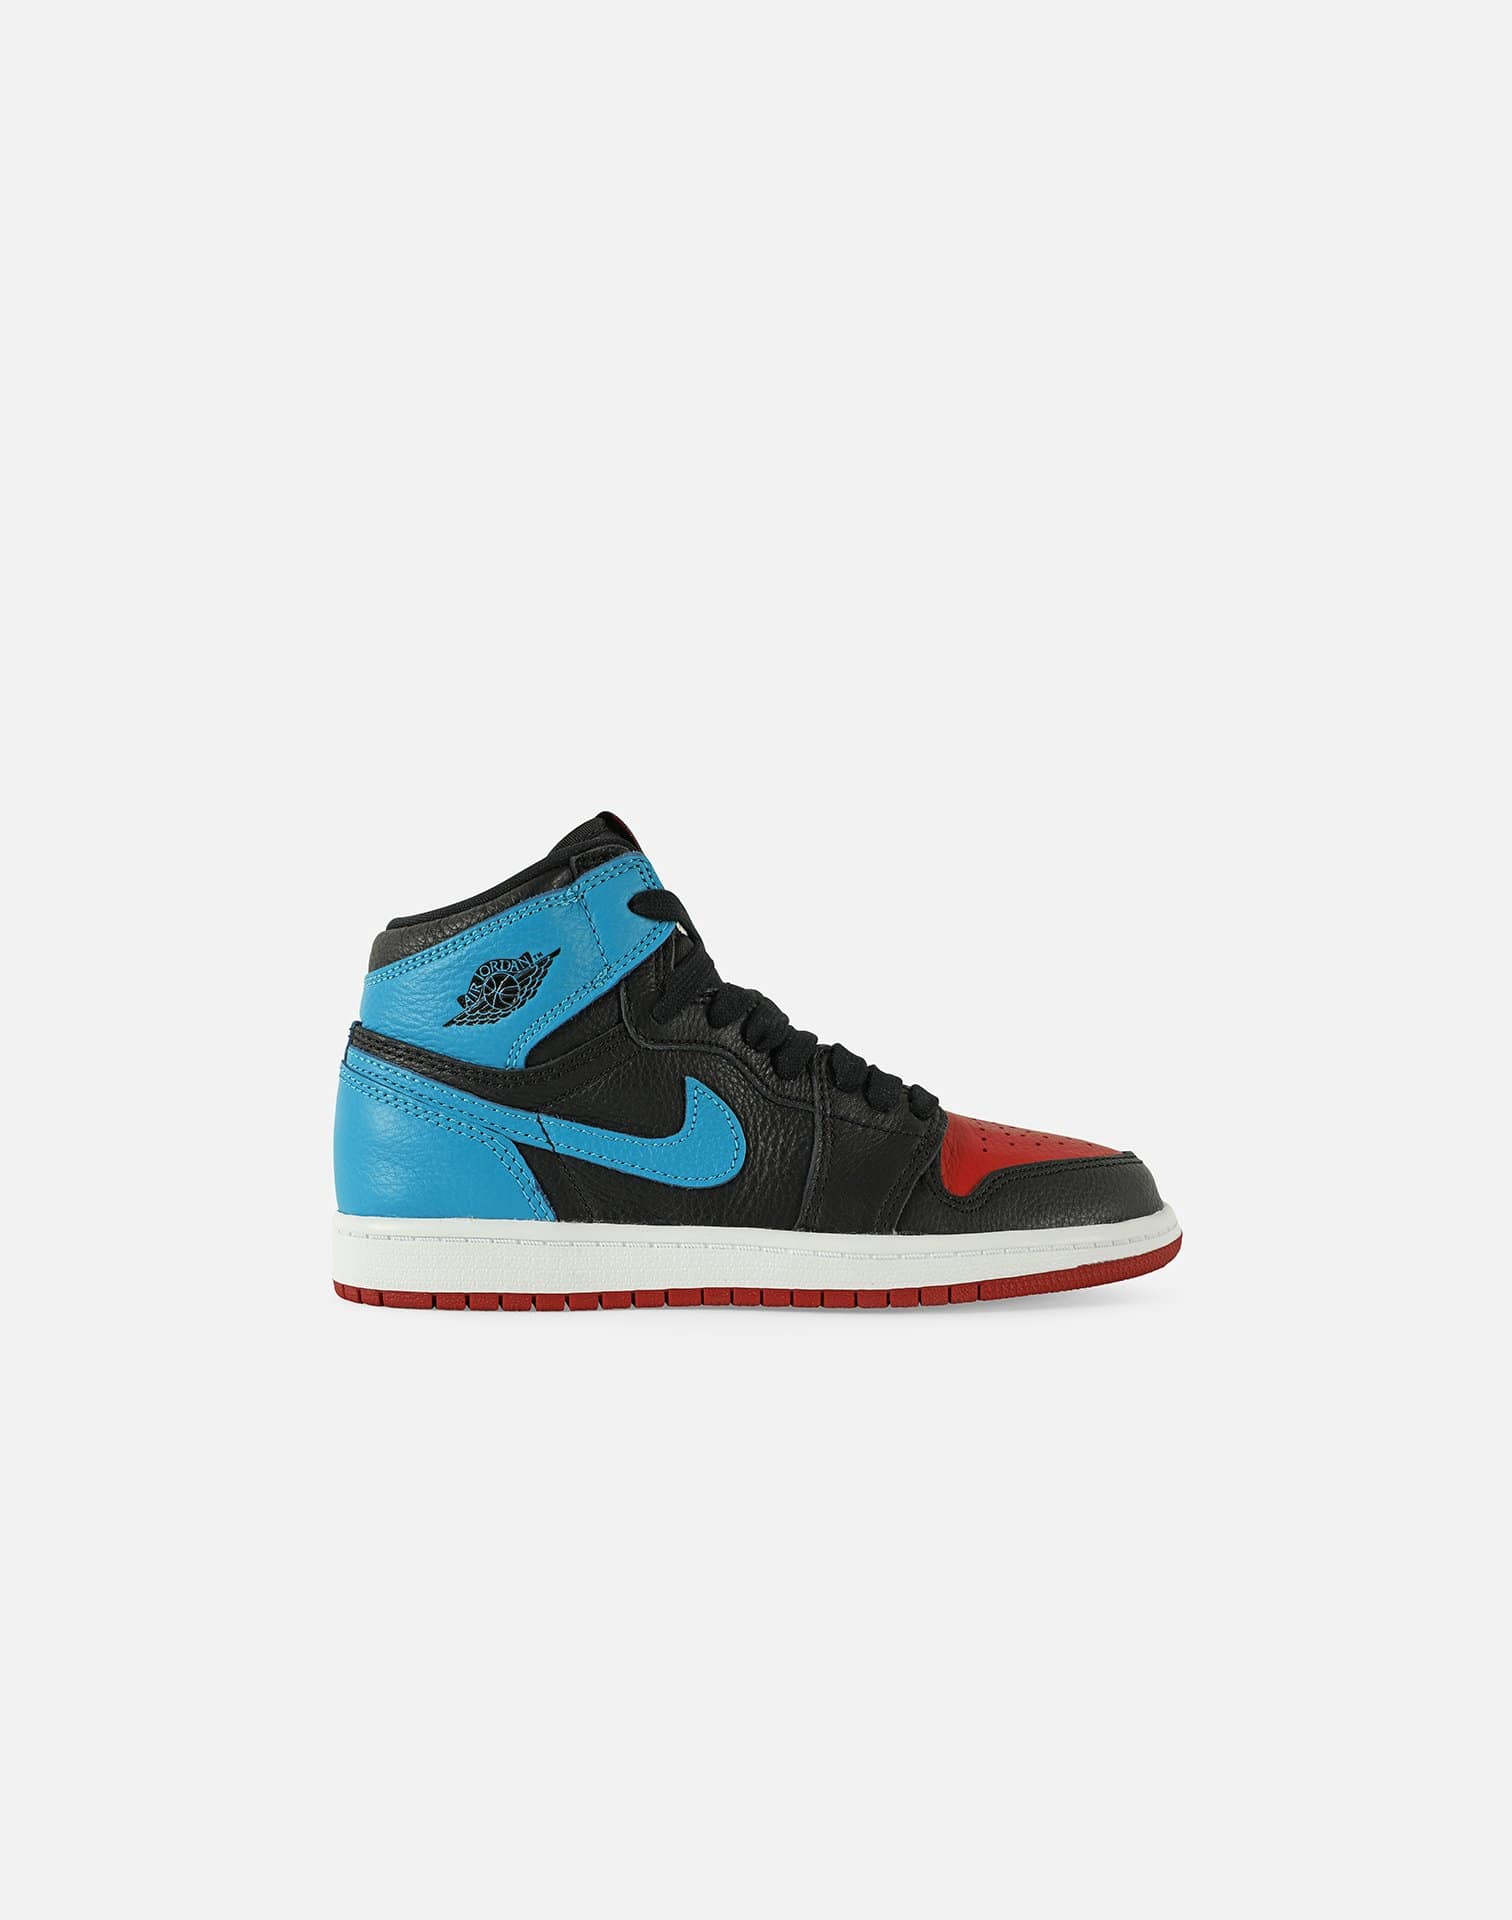 Jordan AIR JORDAN RETRO 1 HIGH OG 'UNC TO CHI' PRE-SCHOOL